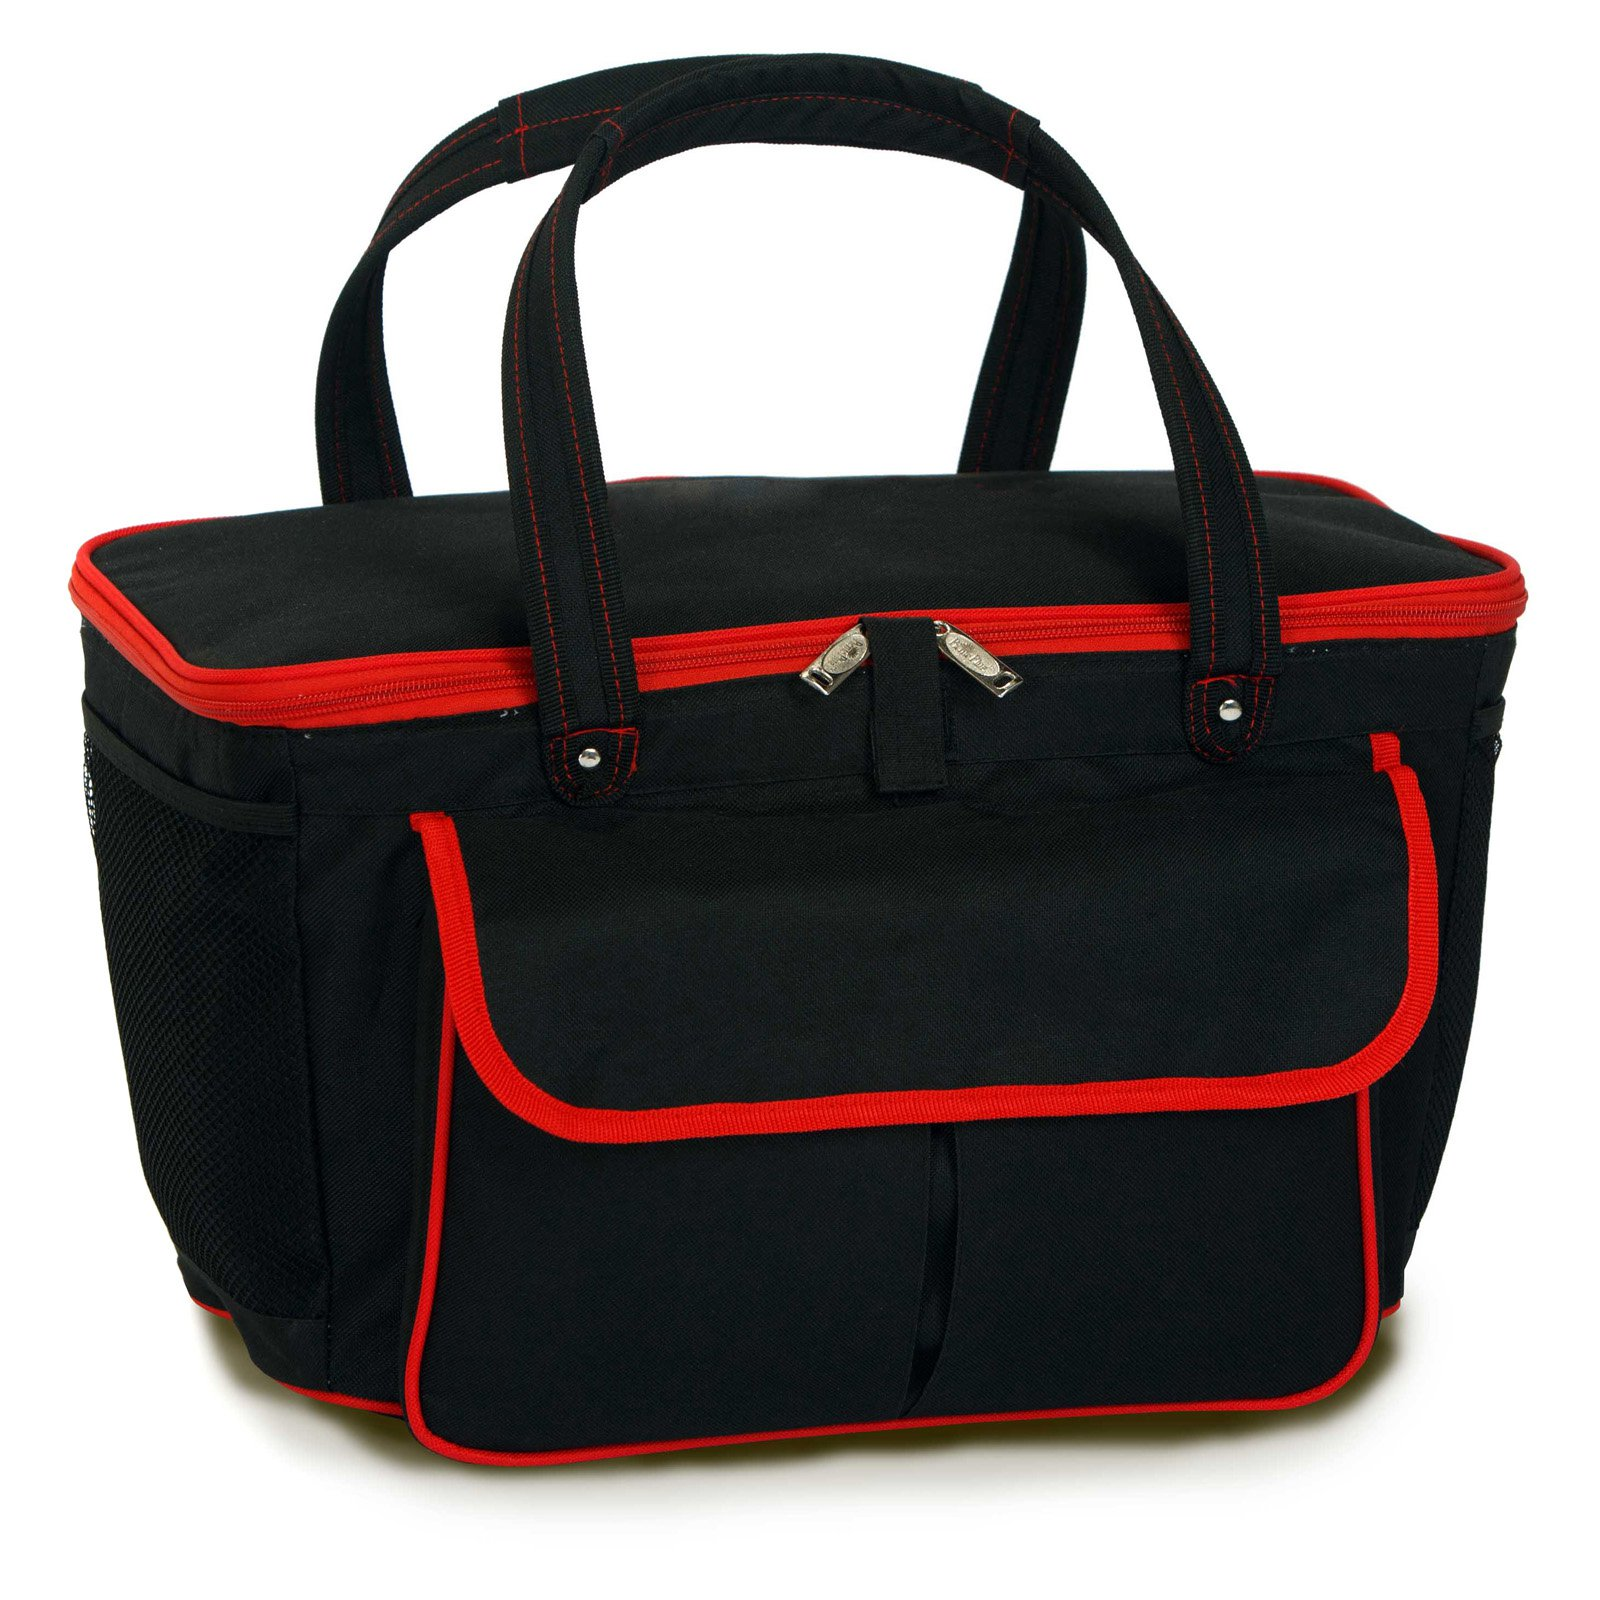 Picnic Plus Avanti Cooler Tote - Black / Red